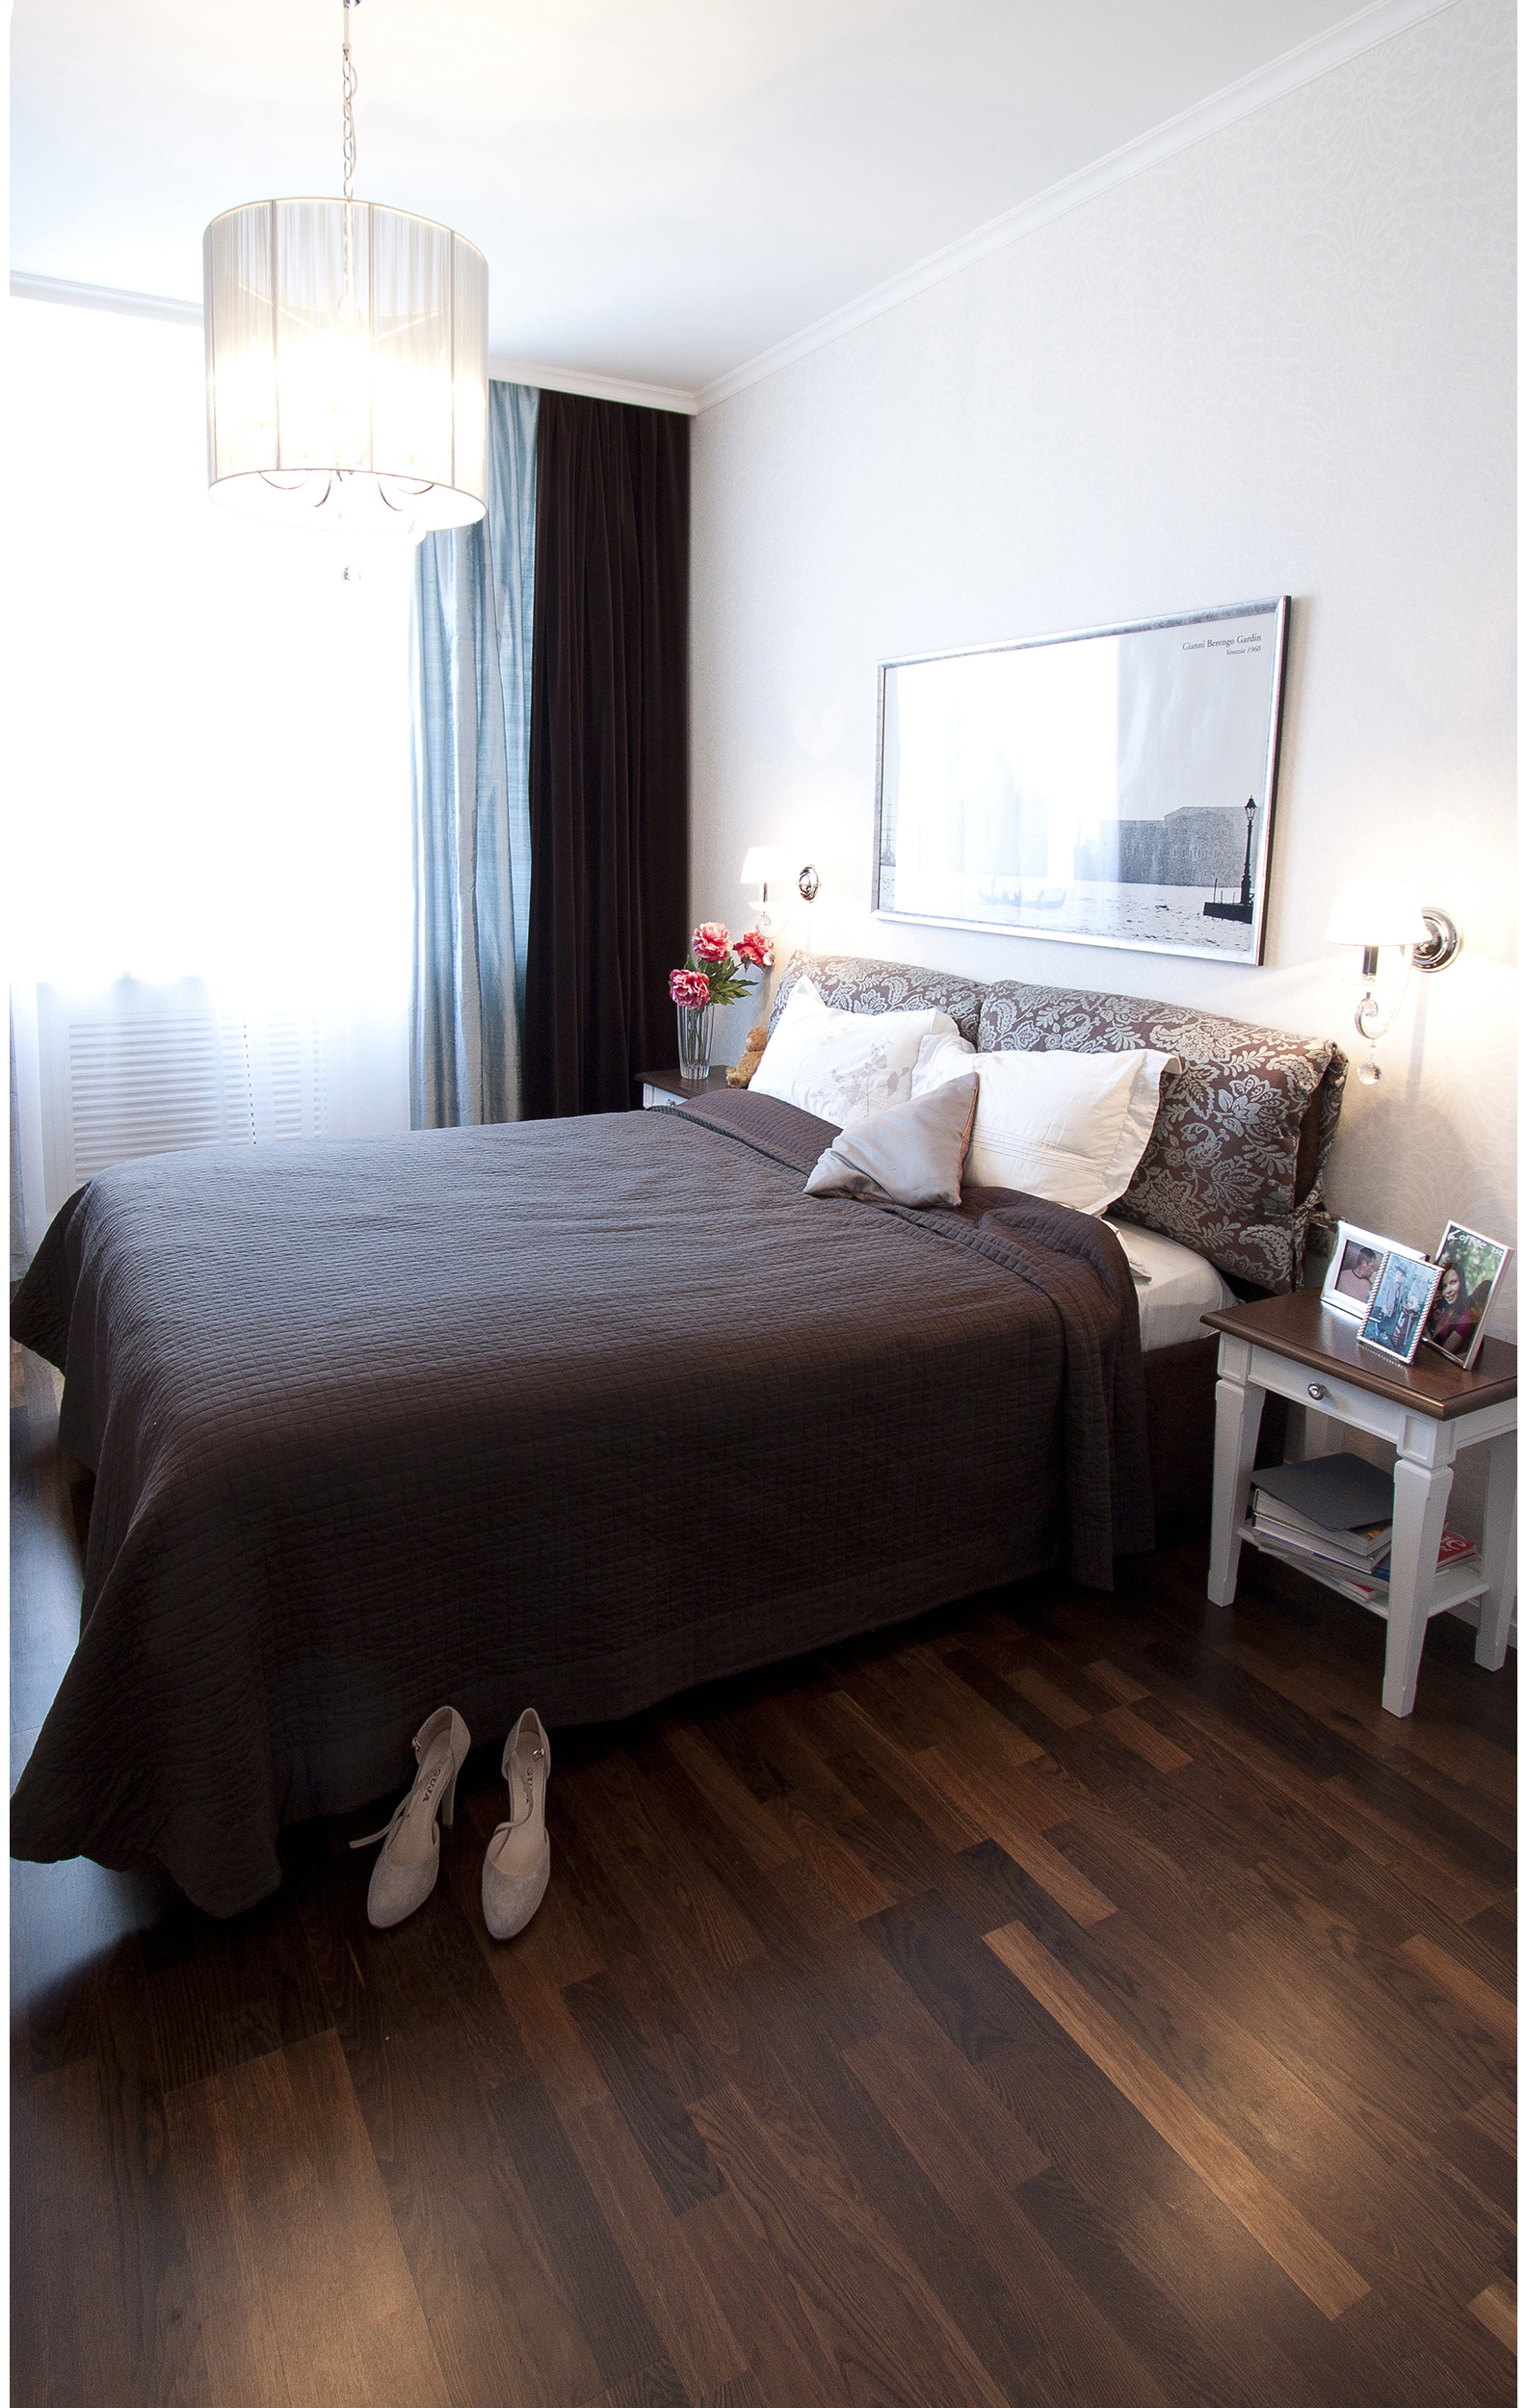 Copy of Traditional style bedroom interior